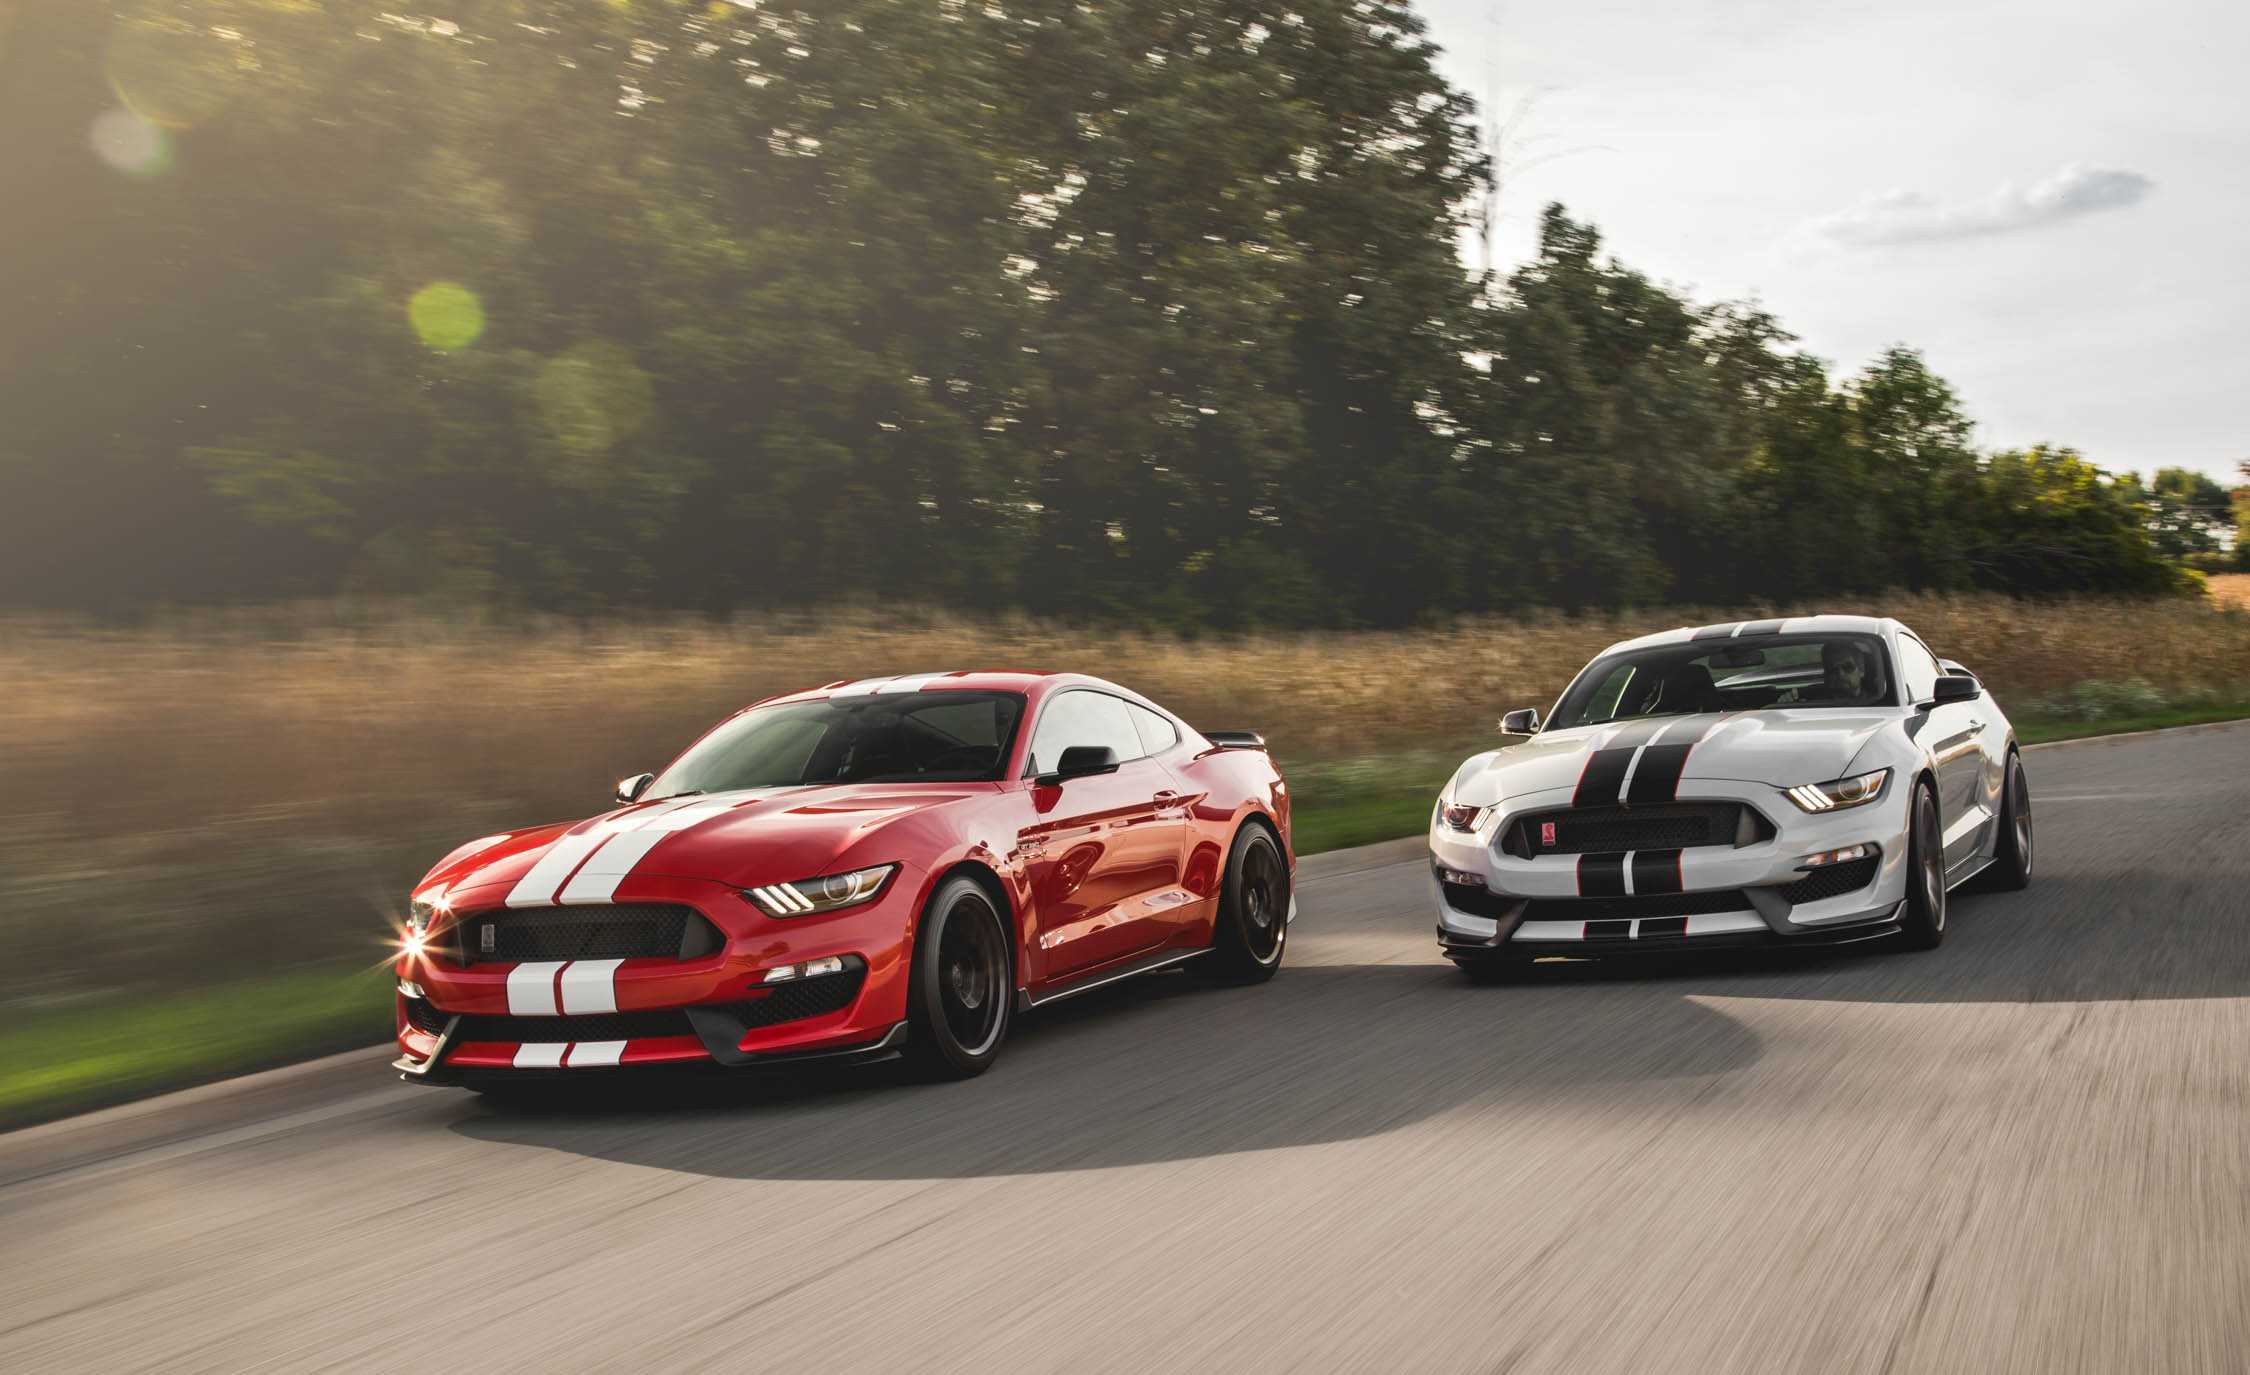 Ford Shelby Gt350r Interior >> 2016 Ford Mustang Shelby GT350 / GT350R | Cars Exclusive Videos and Photos Updates